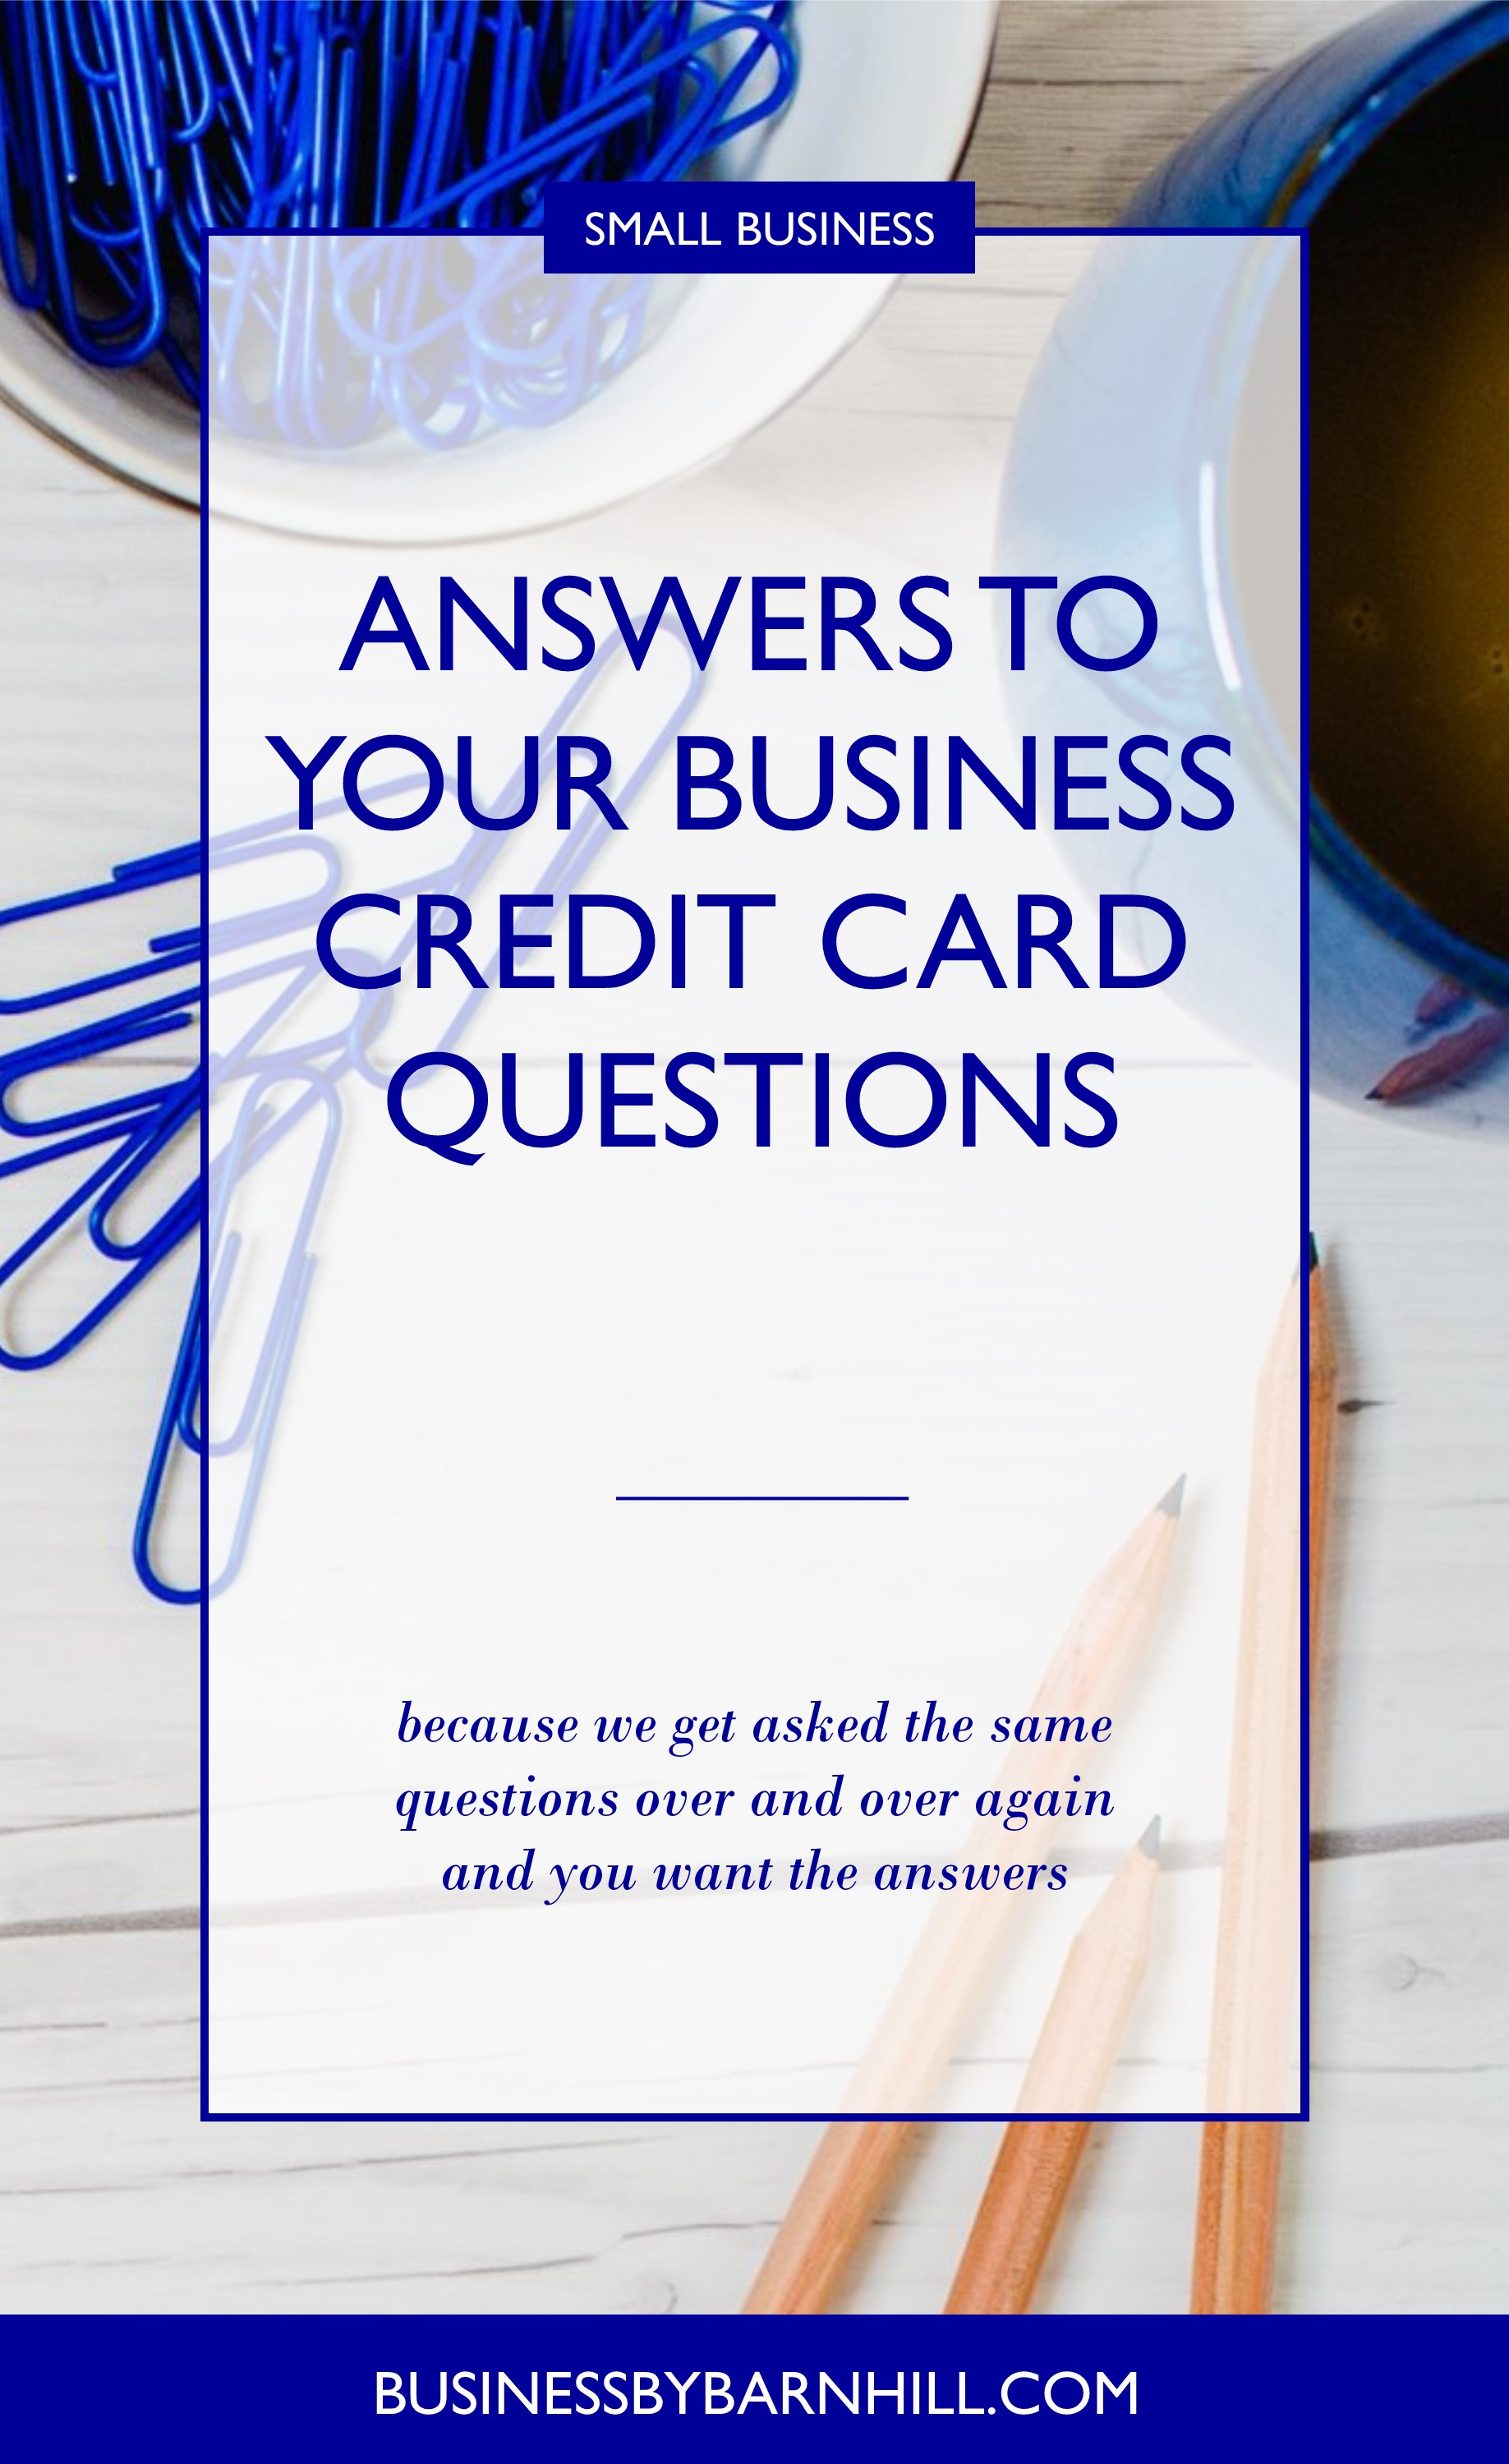 business by barnhill pinterest answers to your business credit card questions 1.jpg